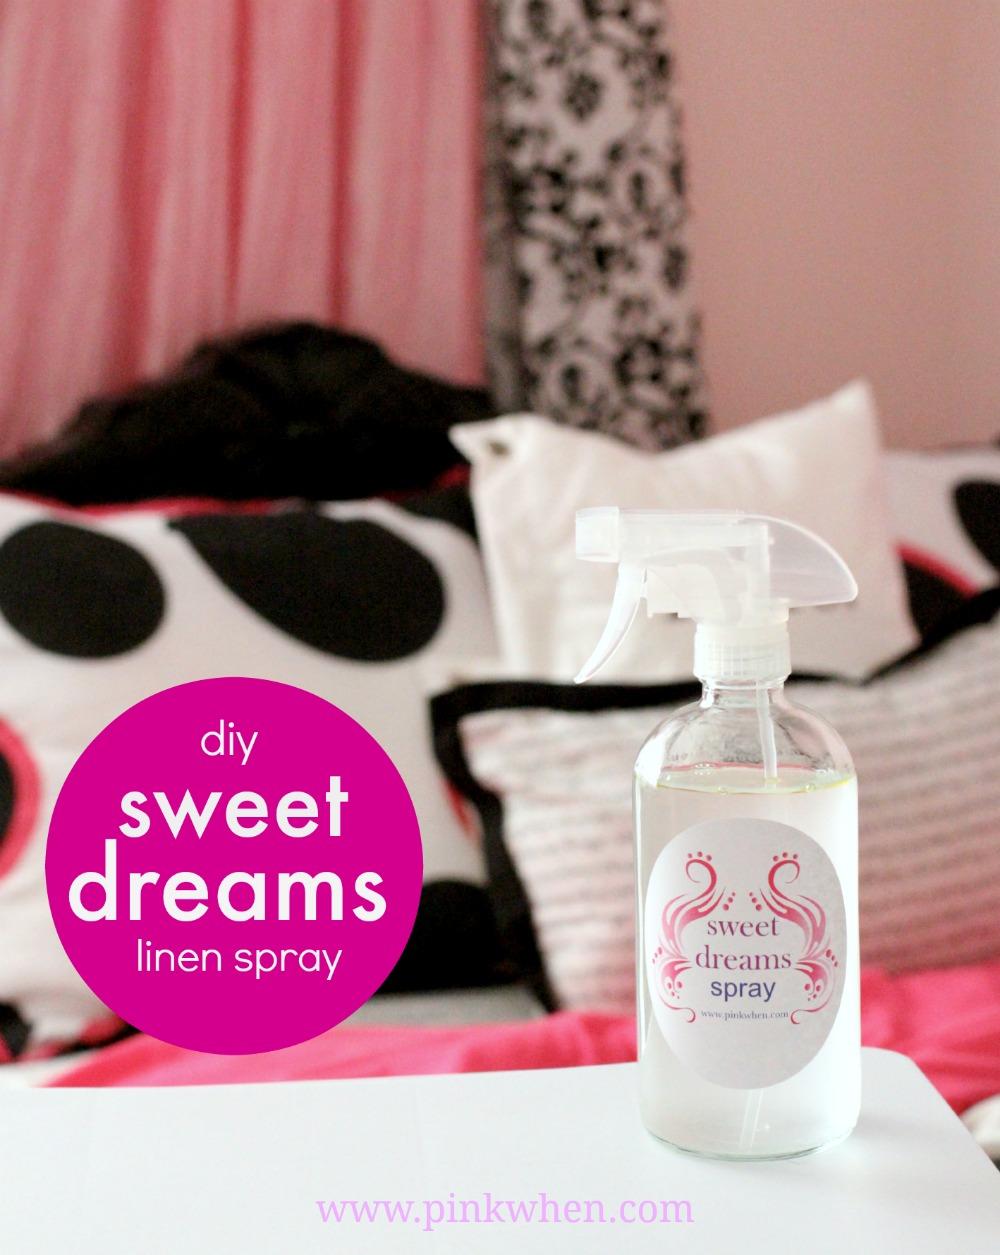 Sweet-Dreams-DIY-Linen-Spray-5